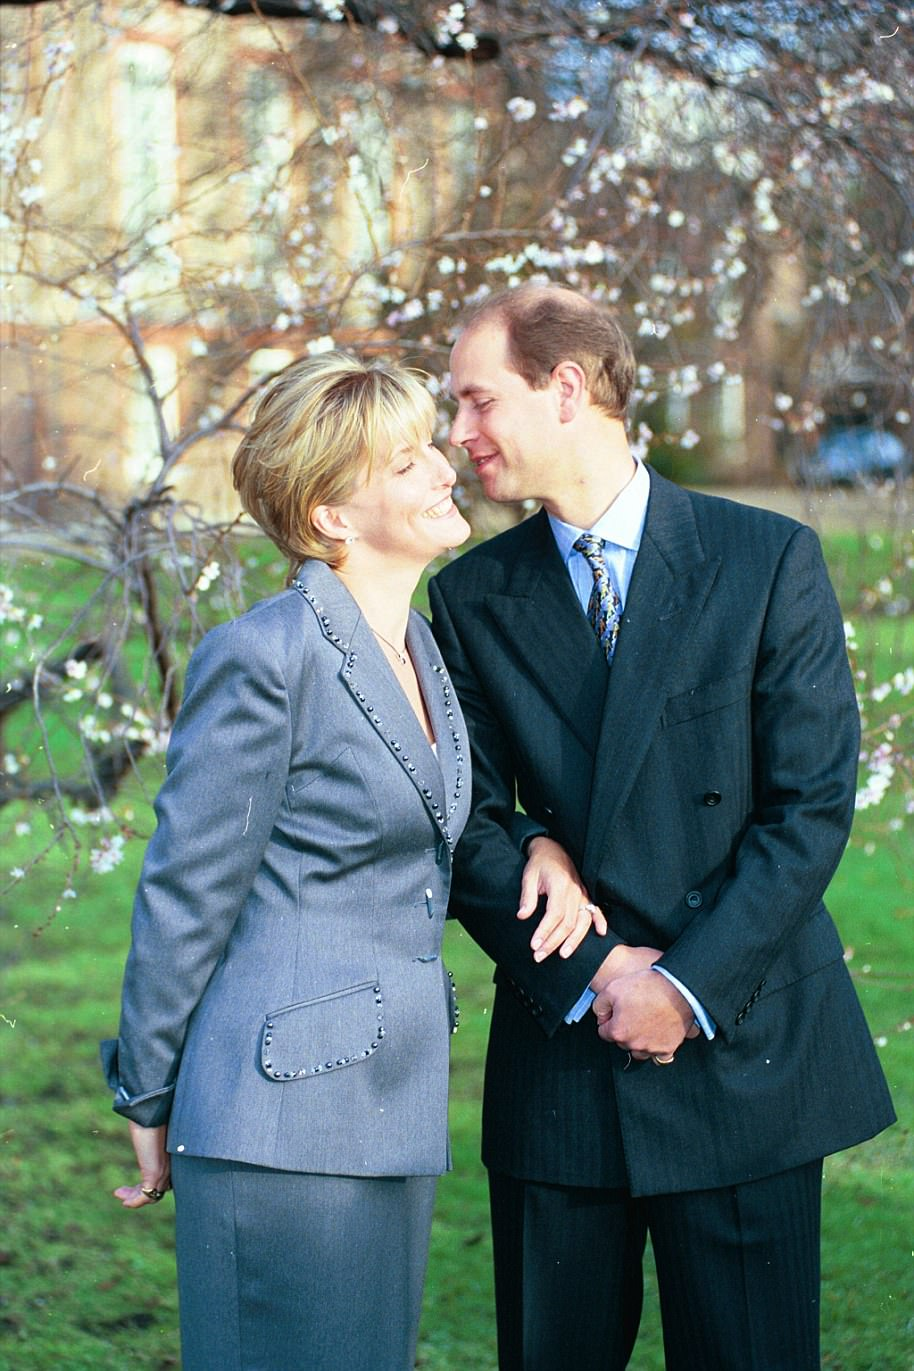 1999: Prince Edward and Sophie Rhys- Jones (Now the Countess of Wessex) pose for their engagement photo in the garden of St James' Palace. Sophie opted for a suit by Tomasz Starzewski. The photo sees the couple in a somewhat more intimate pose with Edward leaning in to place a kiss on Sophie's cheek